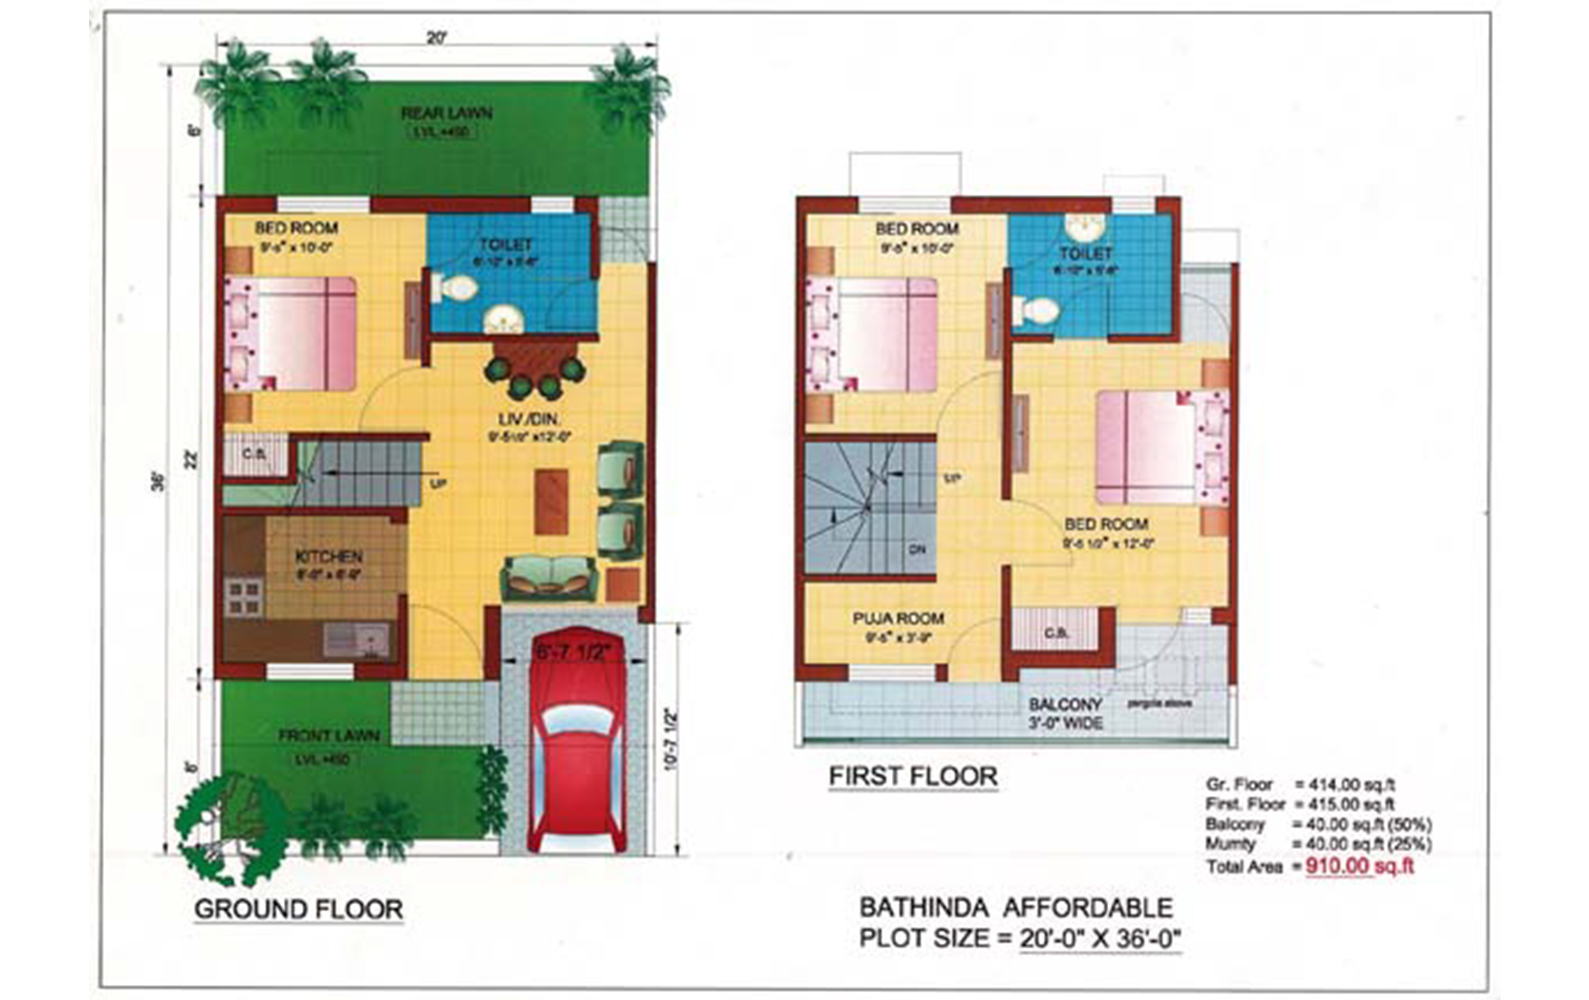 SUSHANT CITY - I, BATHINDA, real estate, image